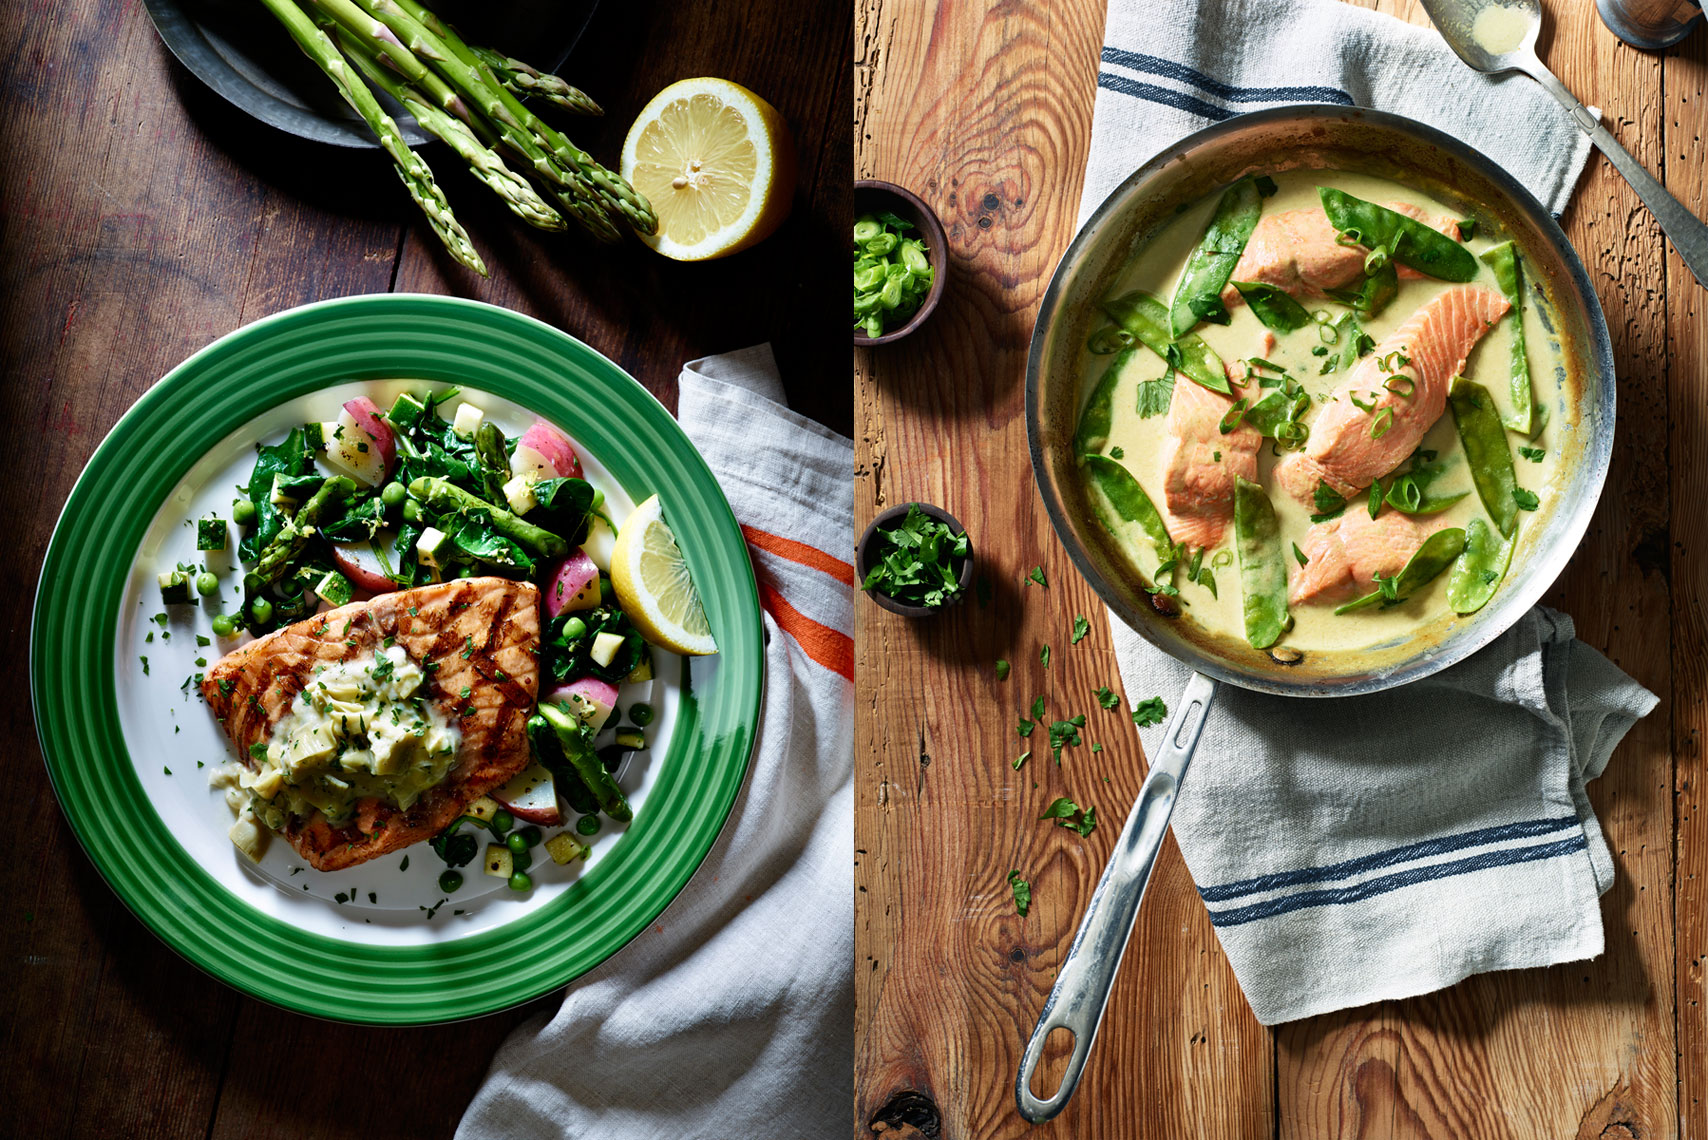 LEIGH-BEISCH_SEAFOOD45_Savory_Cedar_Salmon_11694_Green_Curry_Braised_01_19797